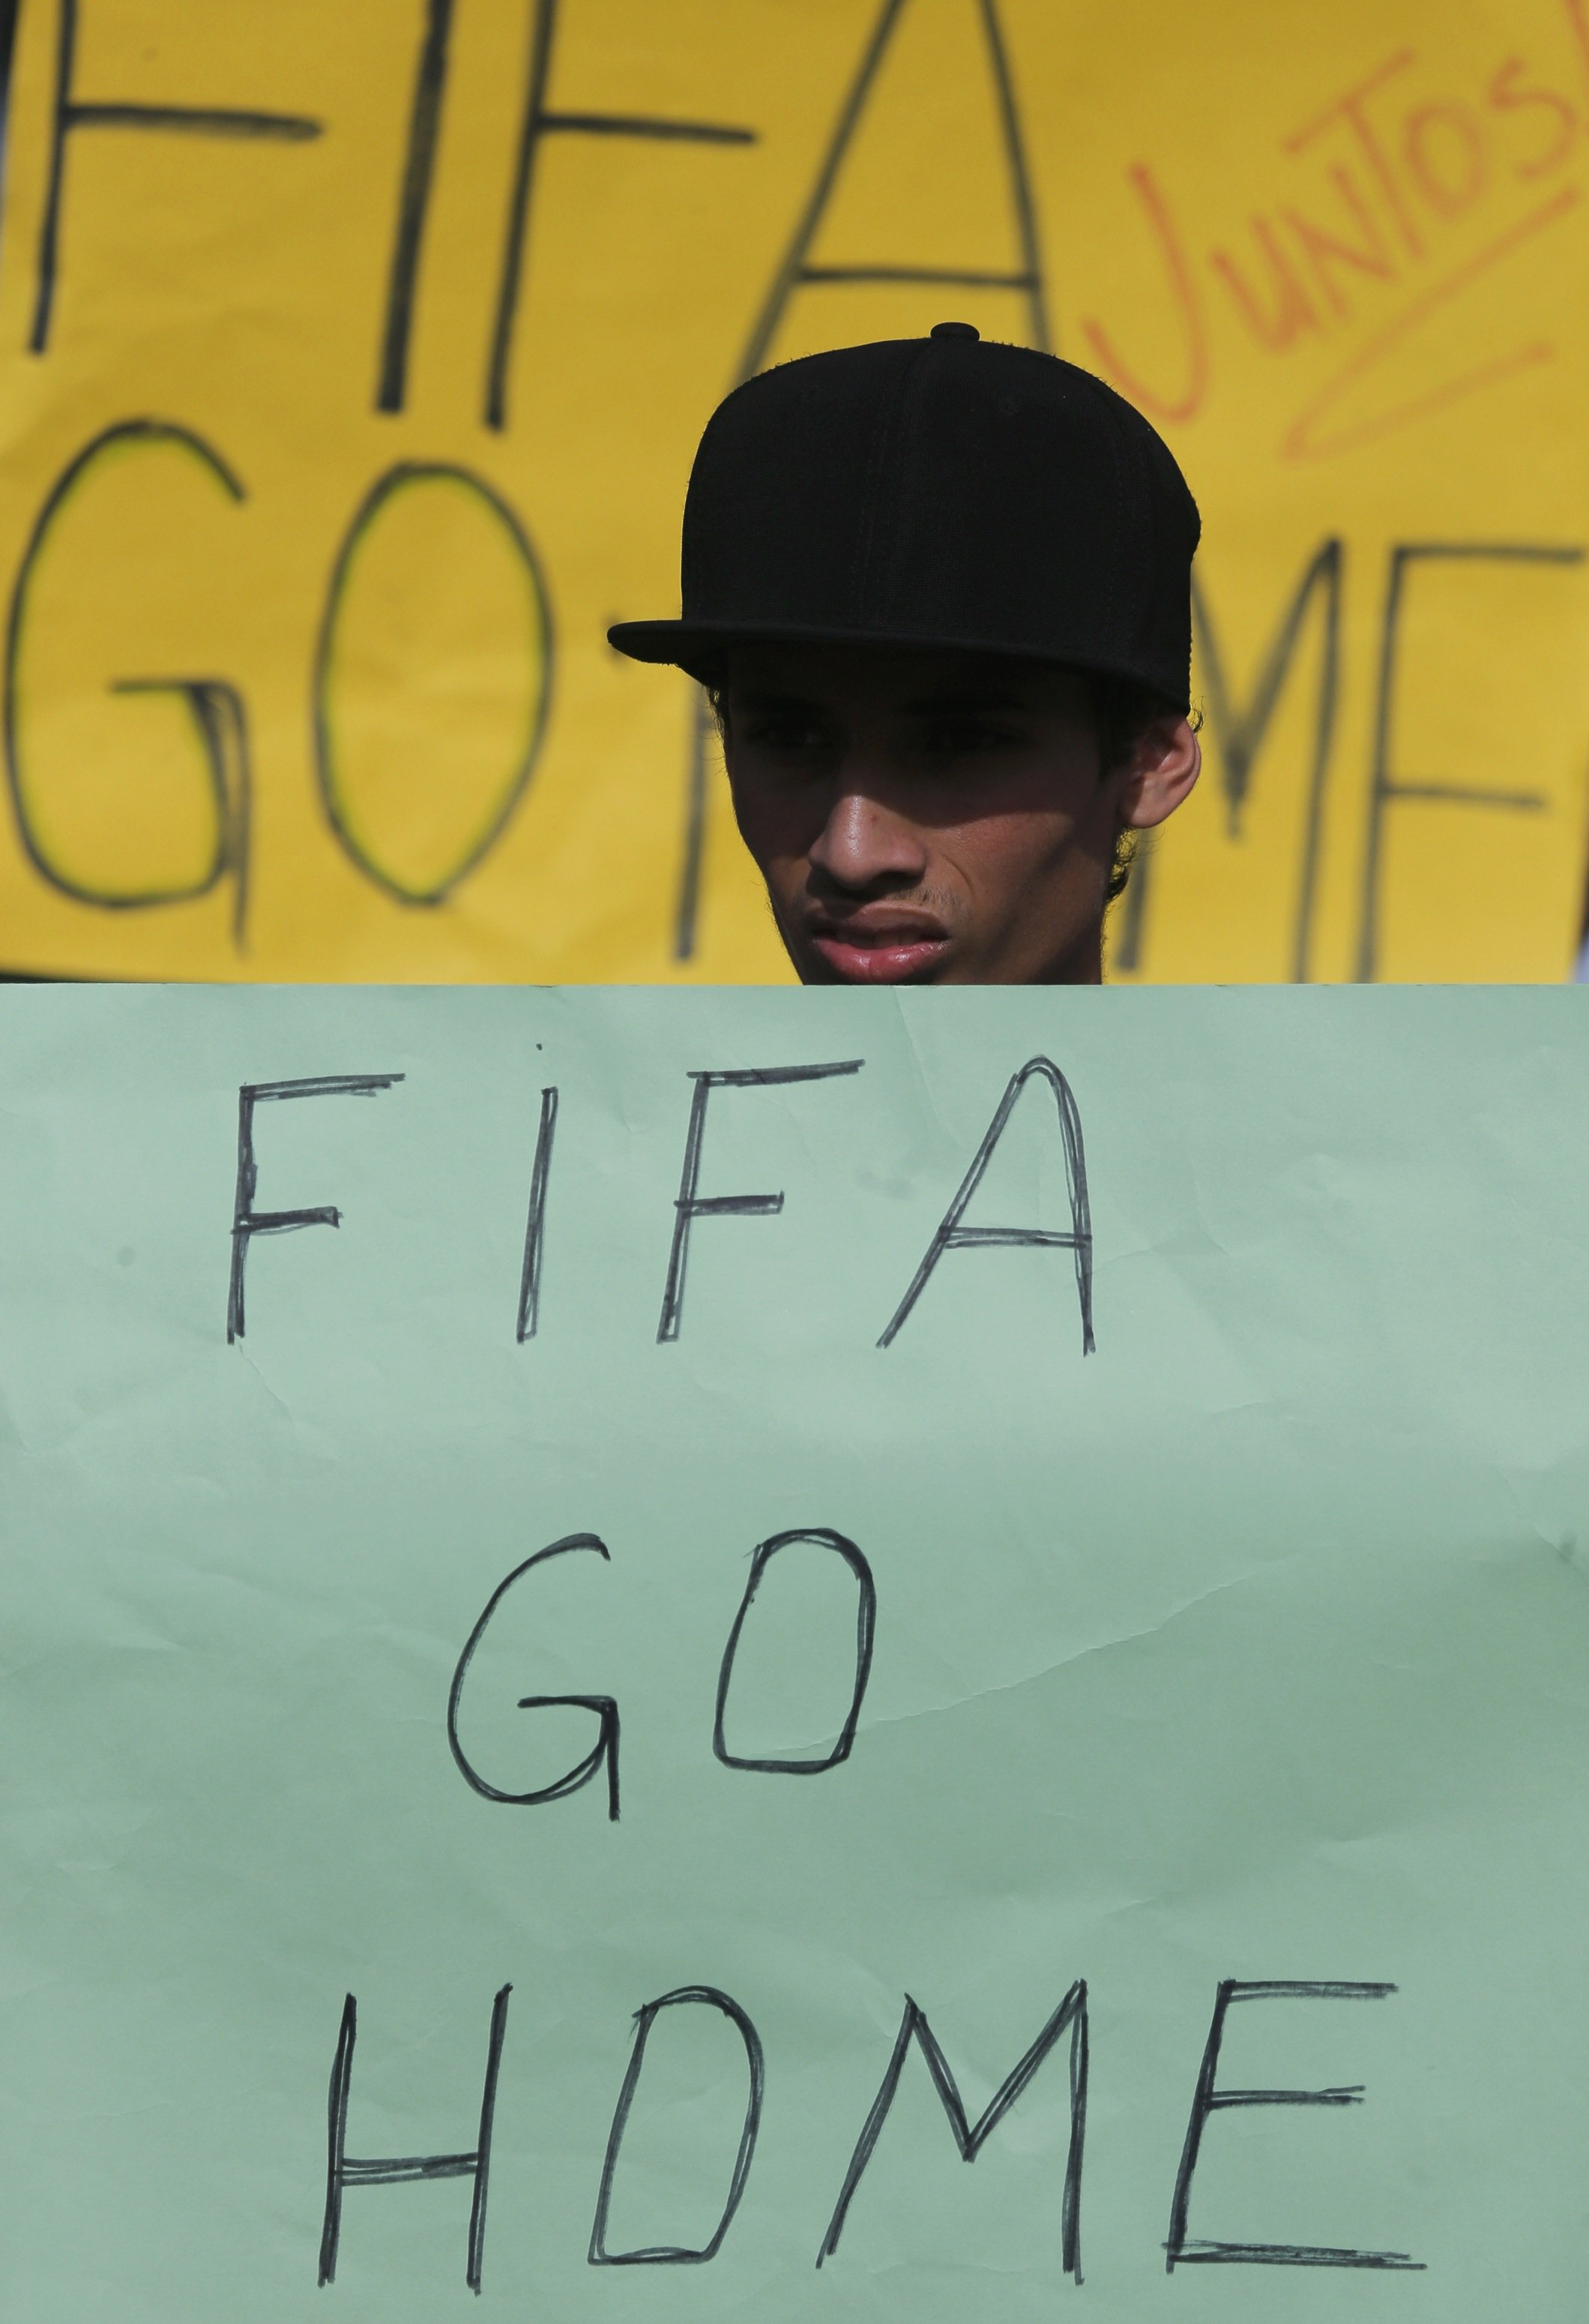 An activist holds a protest poster in front of the municipal stadium prior to a training session by Japan's national soccer in the town of Sorocaba, June 8, 2014.